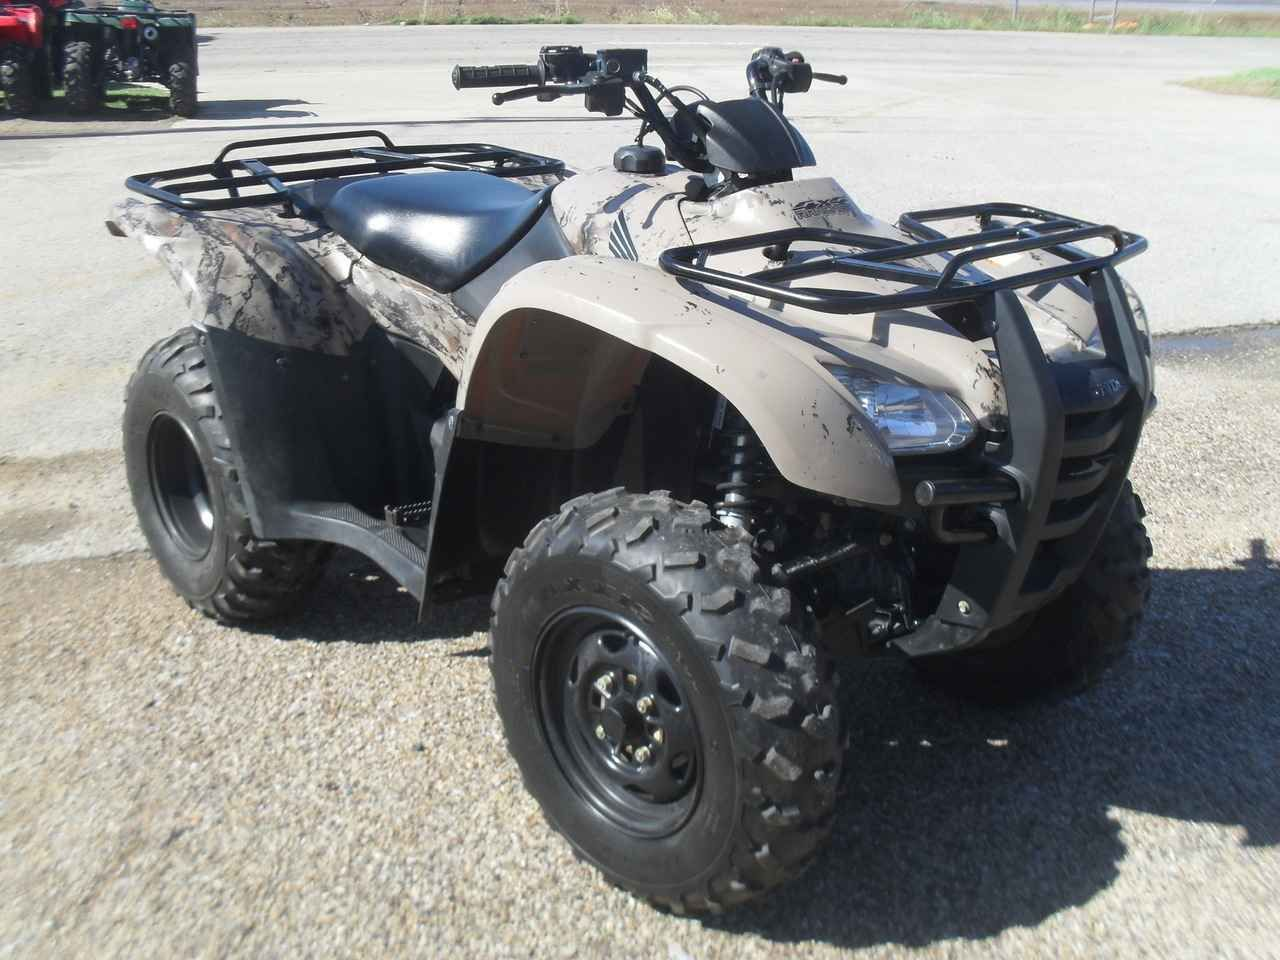 Beautiful Used 2013 Honda FOURTRAX RANCHER 420 4X4 ATVs For Sale In Texas. 2013 Honda  Rancher